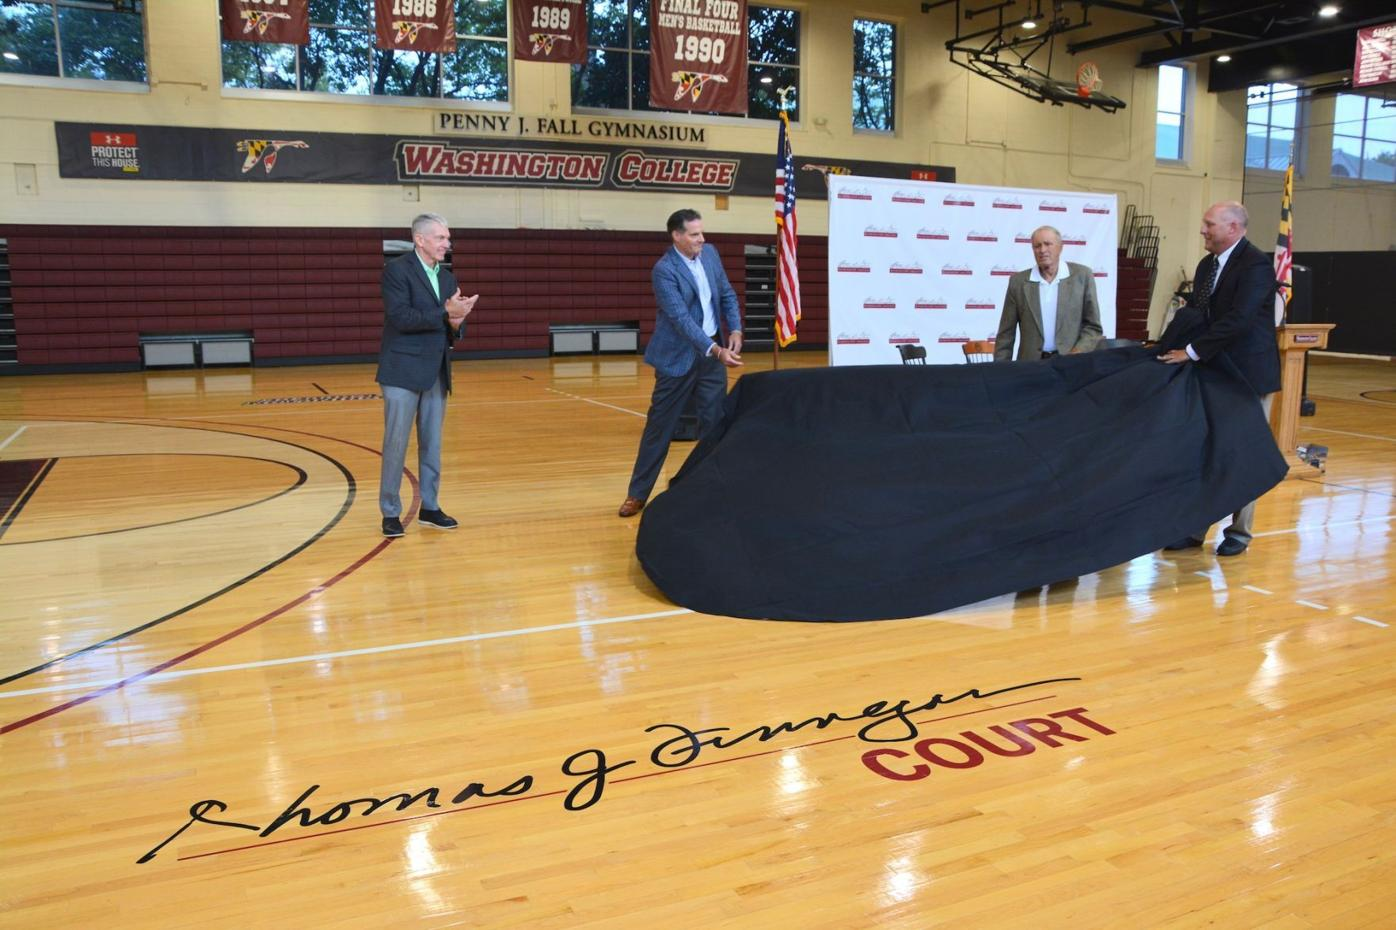 Tribute to Finnegan includes basketball court dedication